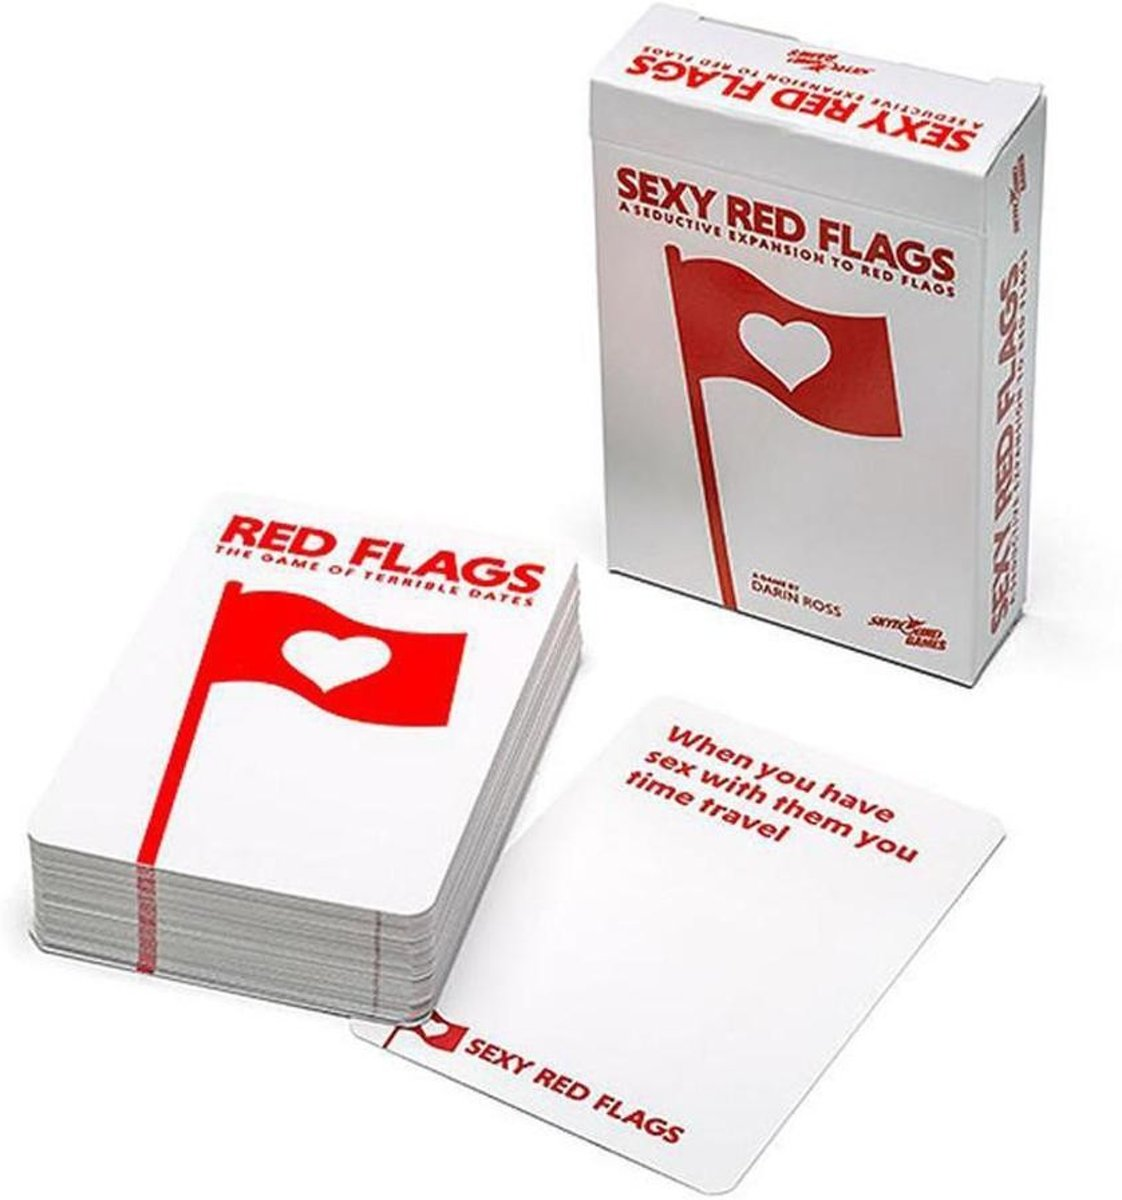 Sexy Red Flags Expansion